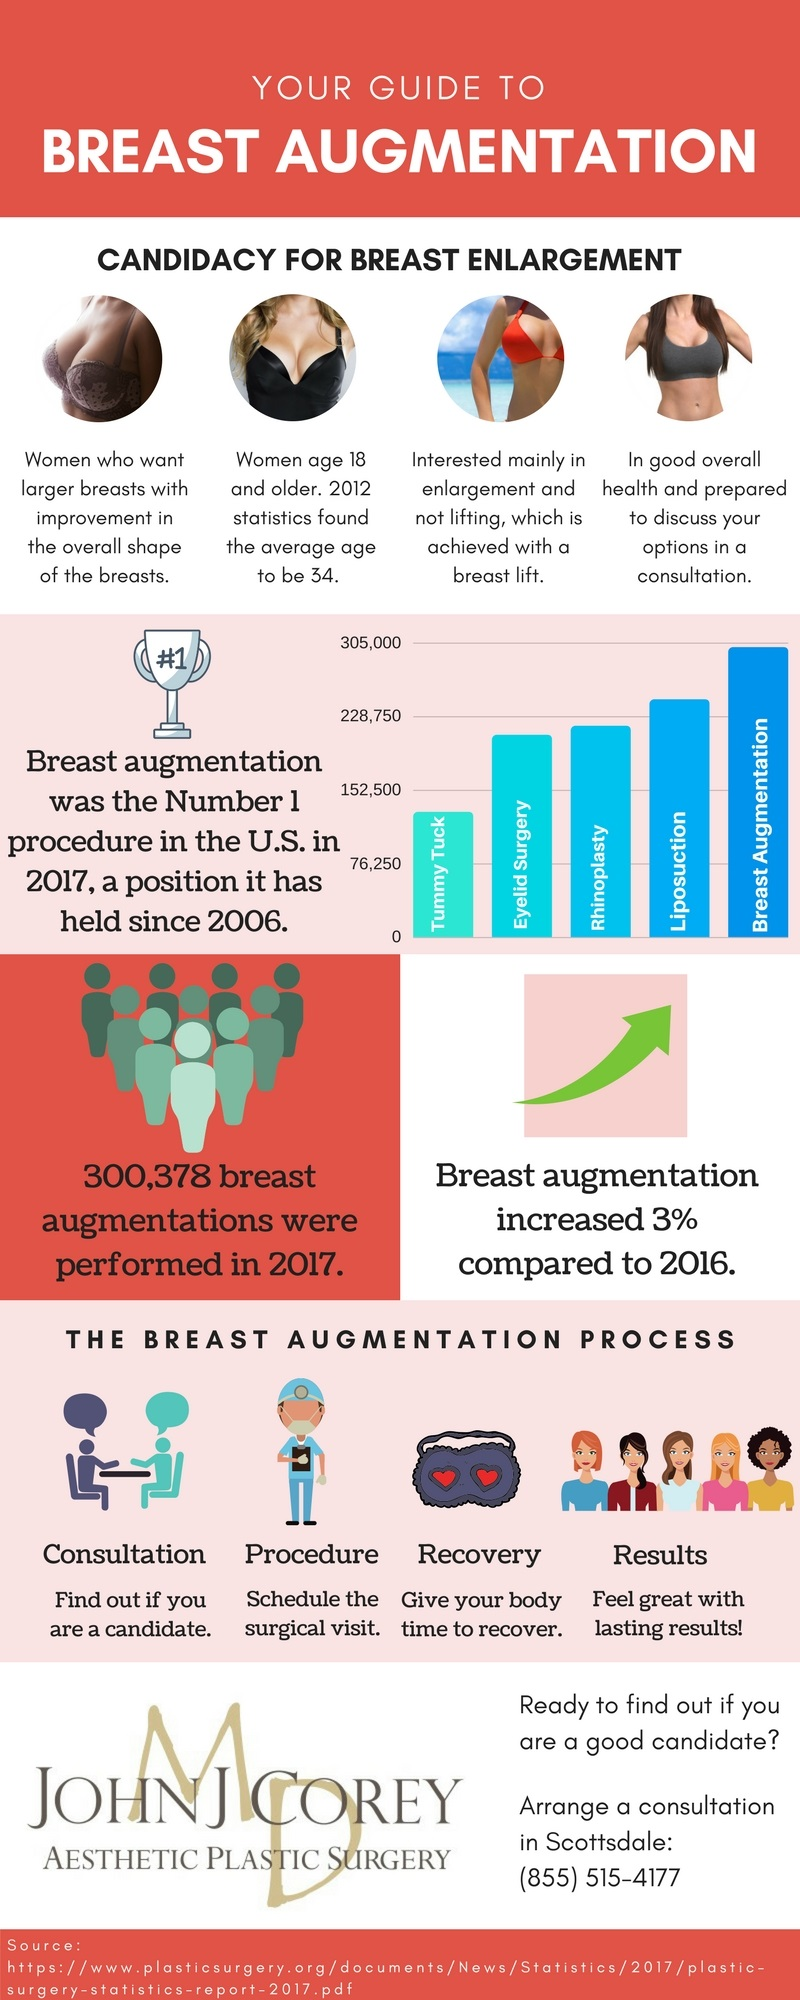 Breast augmentation statistics infographic